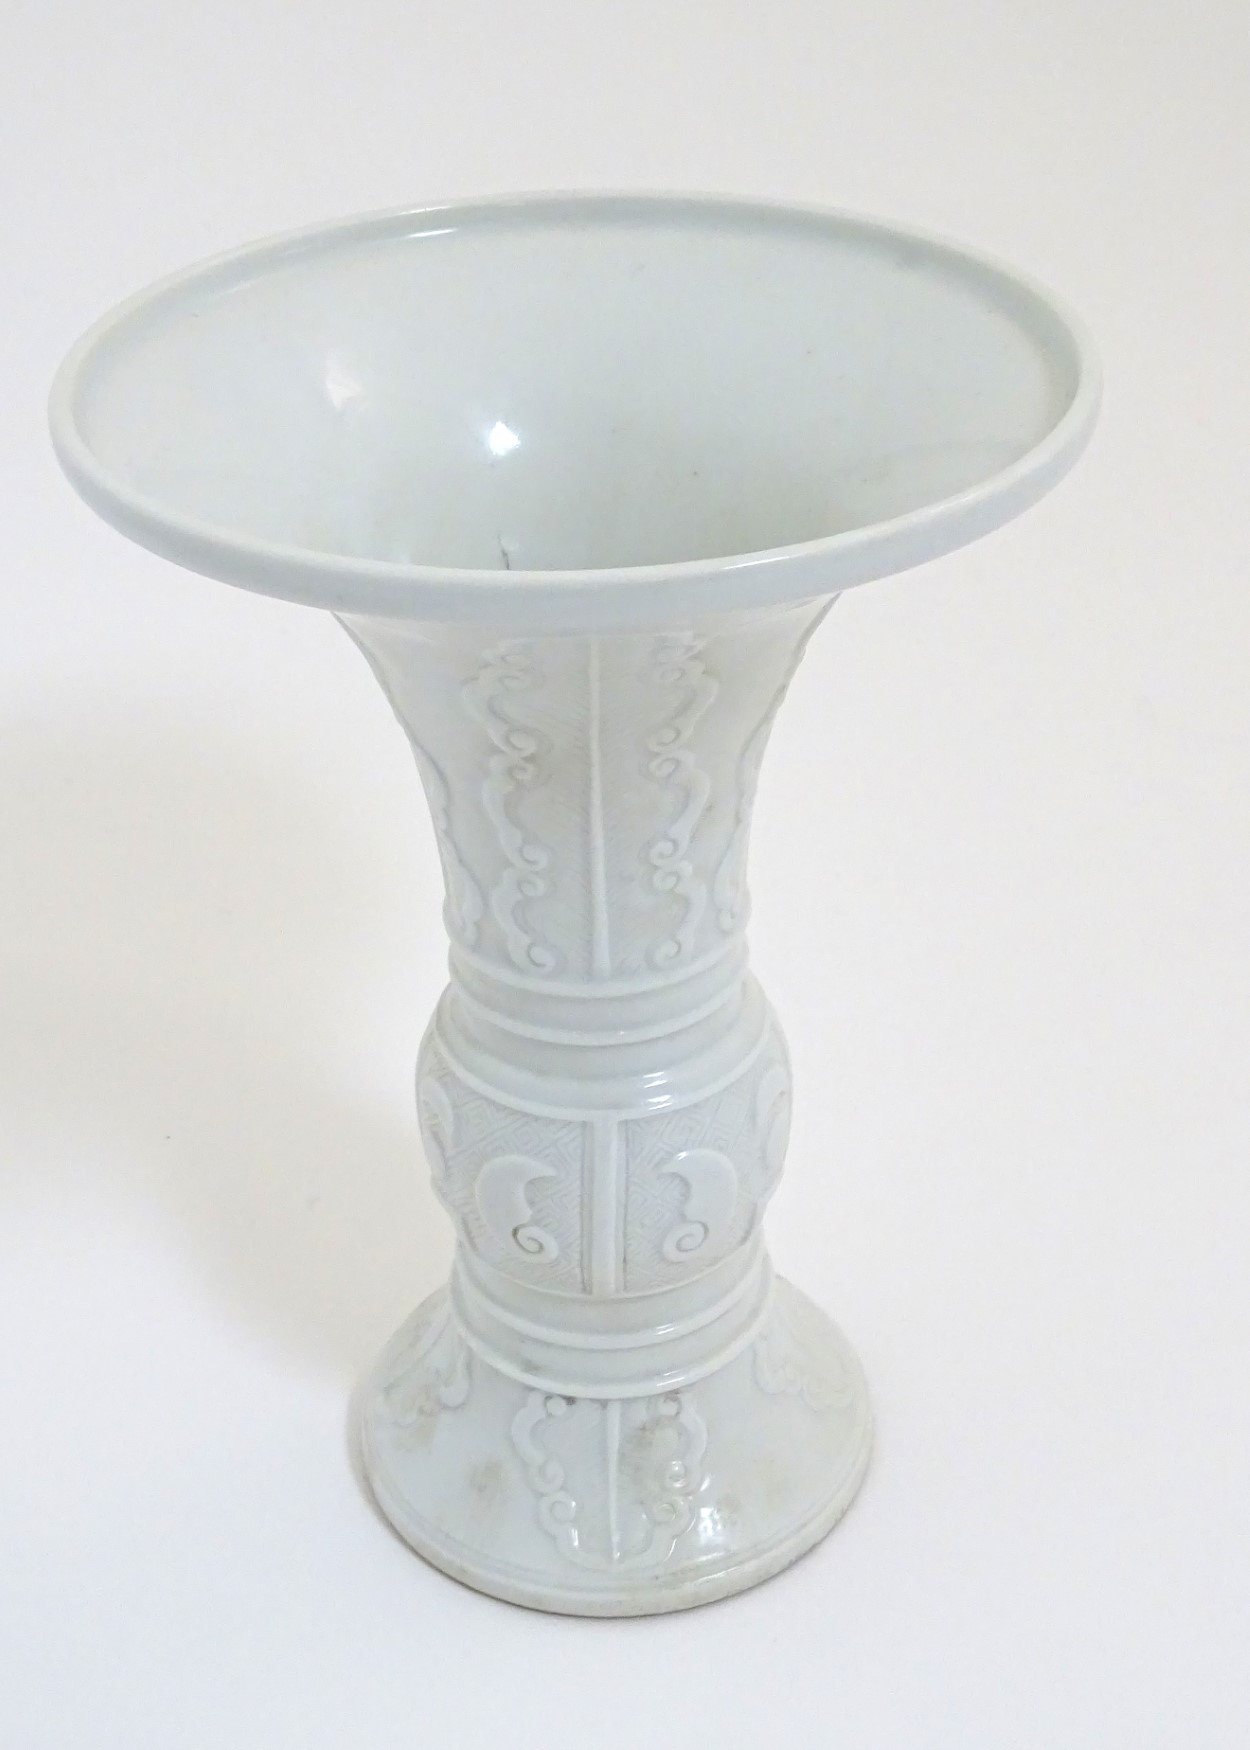 A Chinese white glazed Gu vase of archaic bronze design, - Image 4 of 8